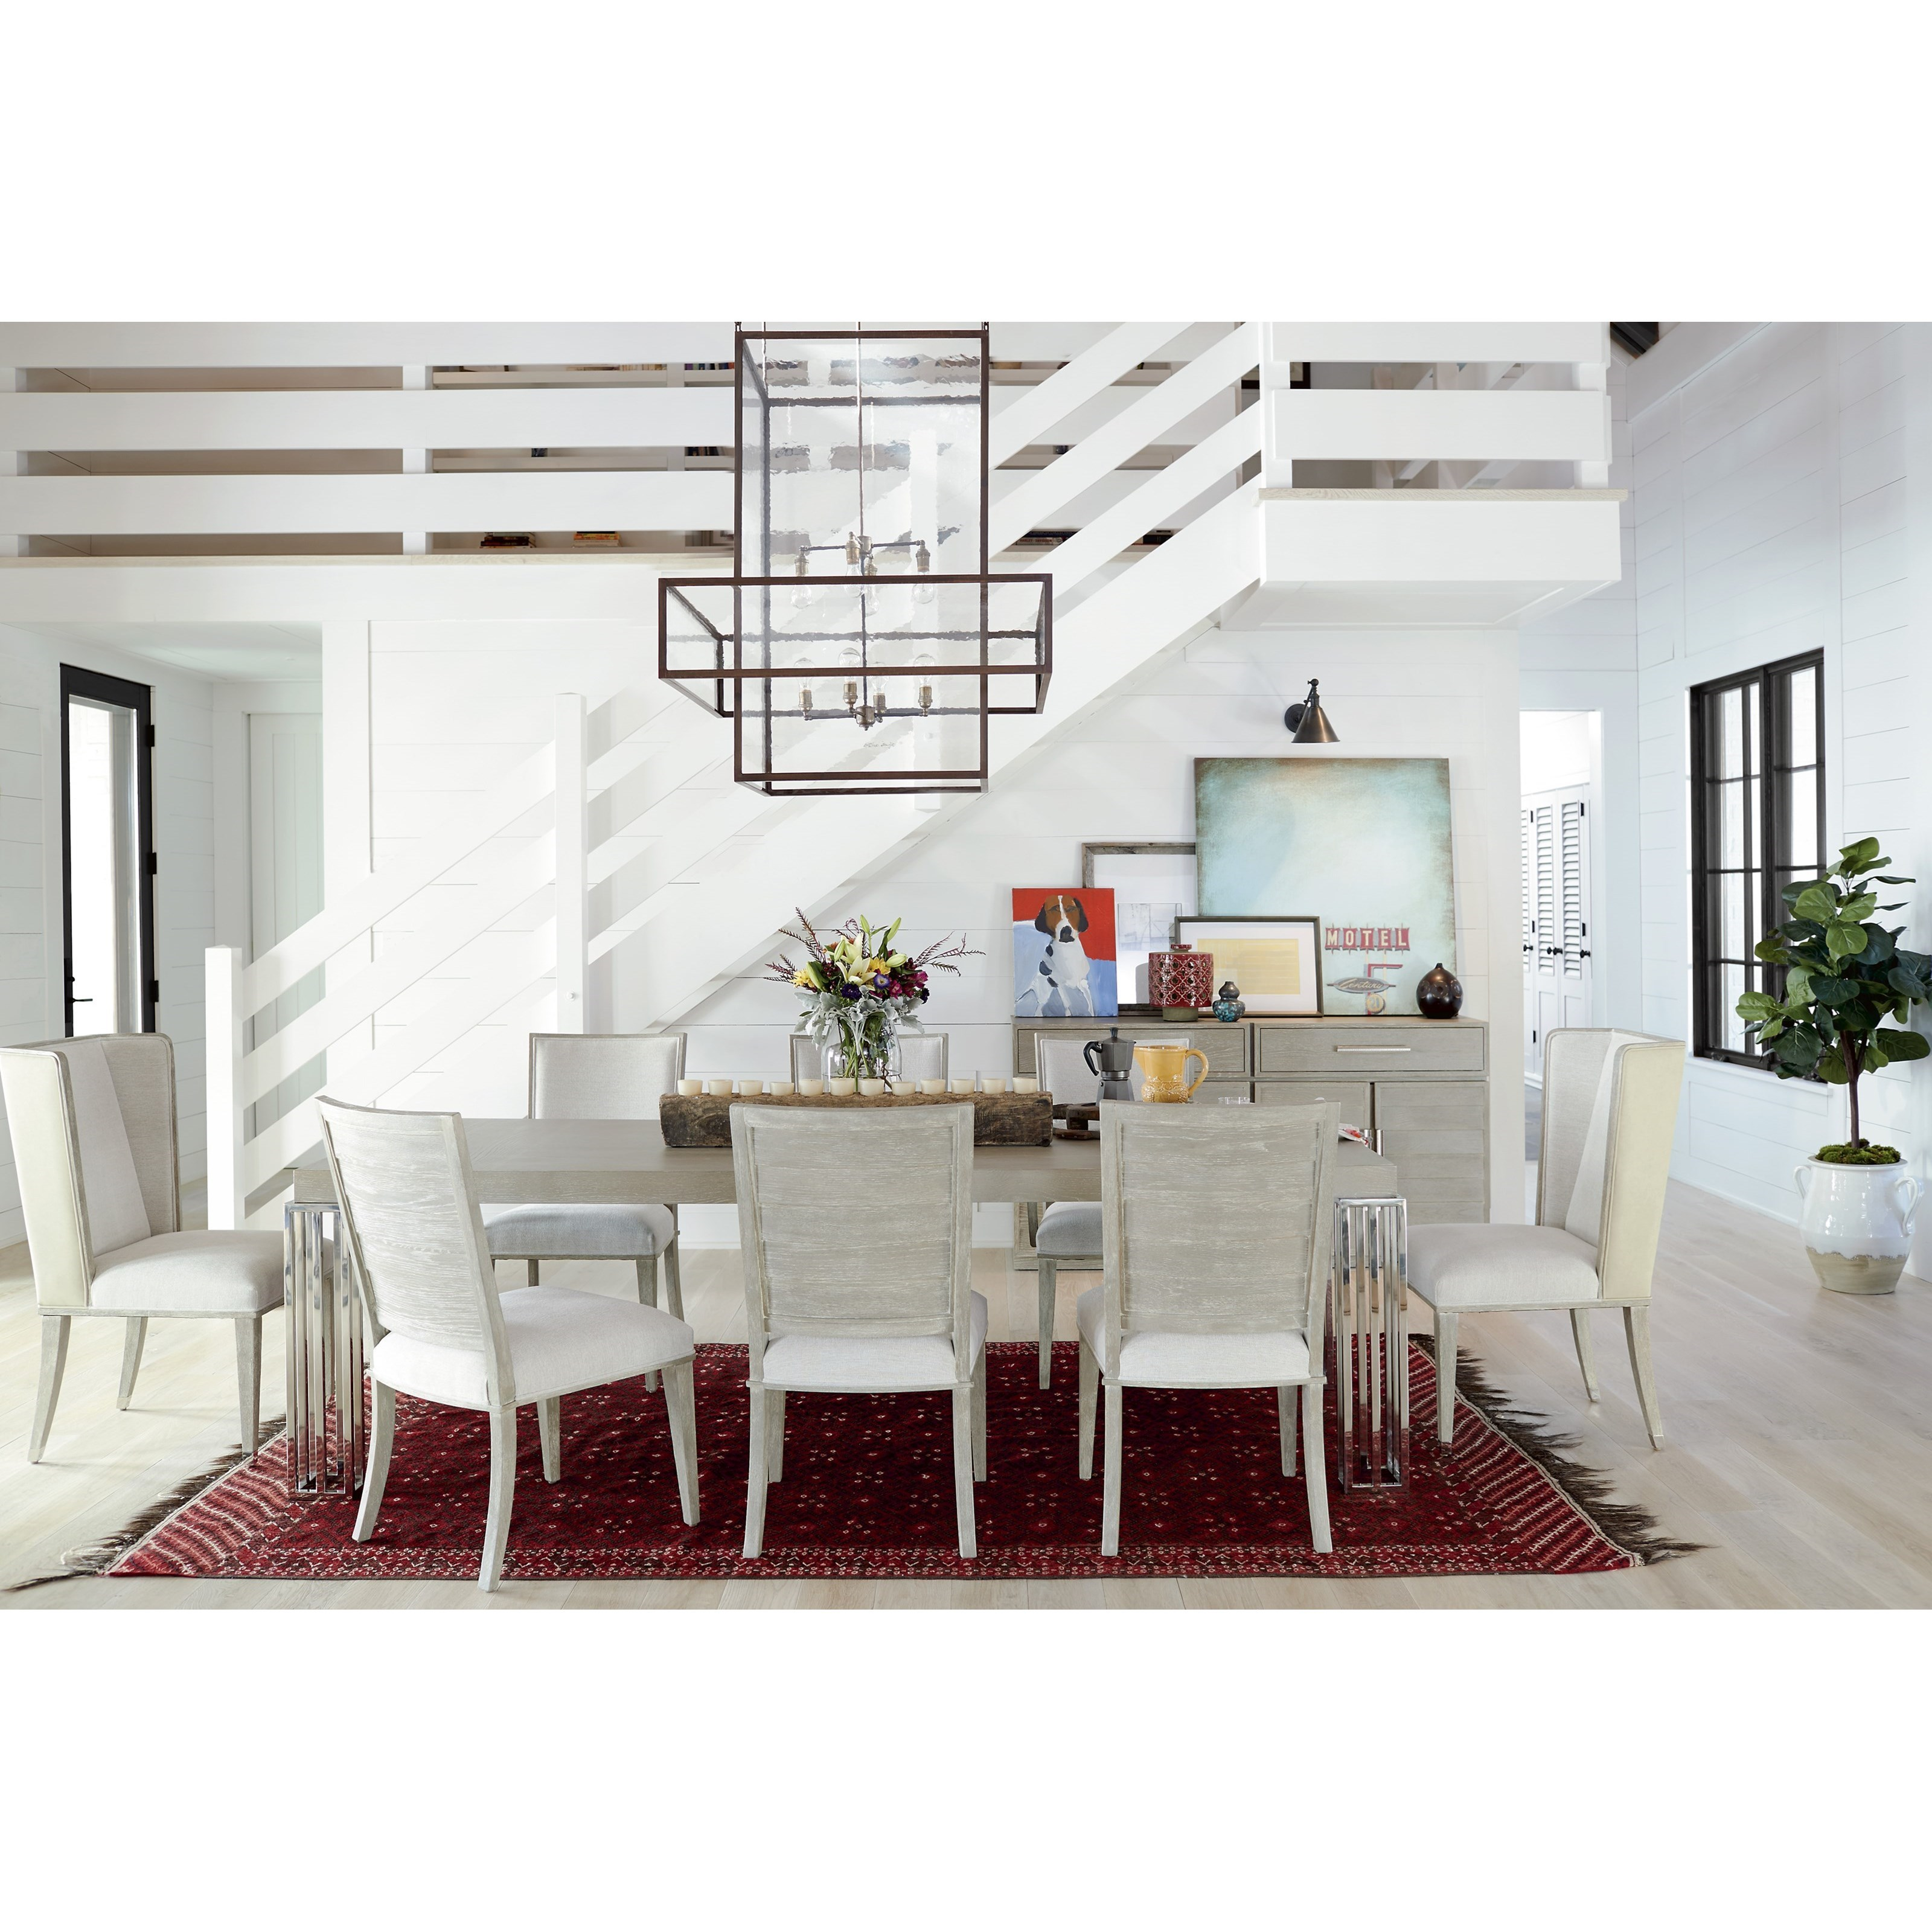 Zephyr Formal Dining Room Group by Universal at Powell's Furniture and Mattress